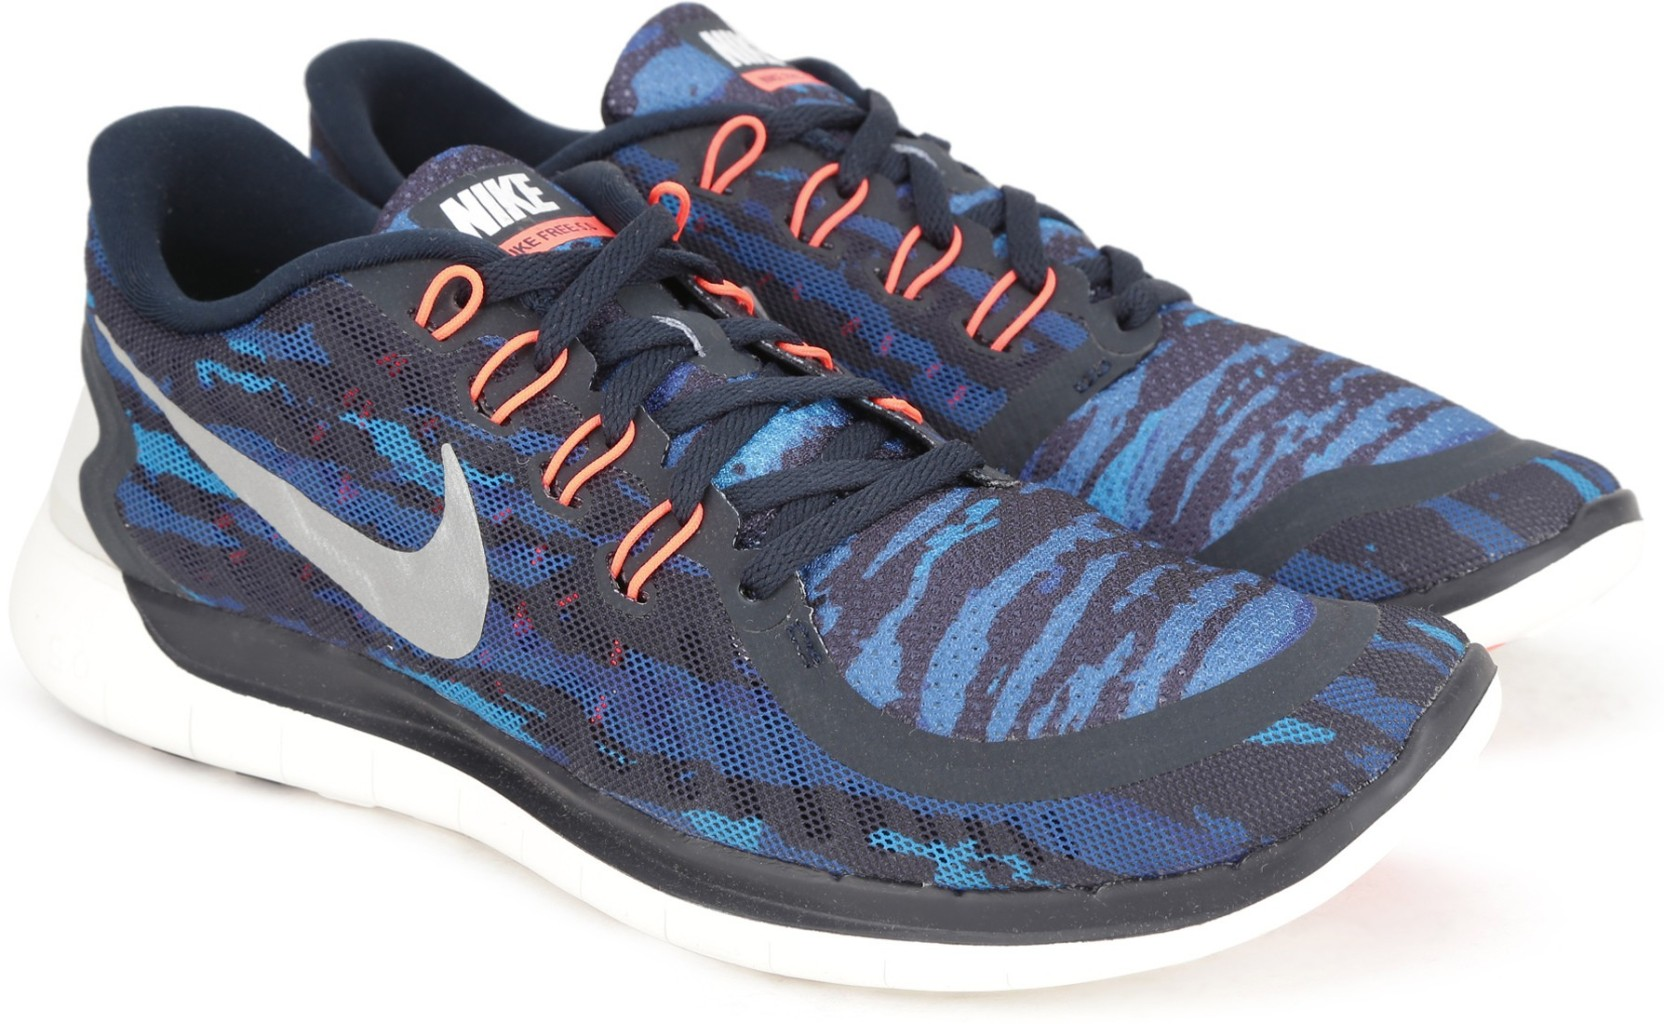 online store 1bc23 fe81f Nike FREE 5.0 PRINT Running Shoes For Men